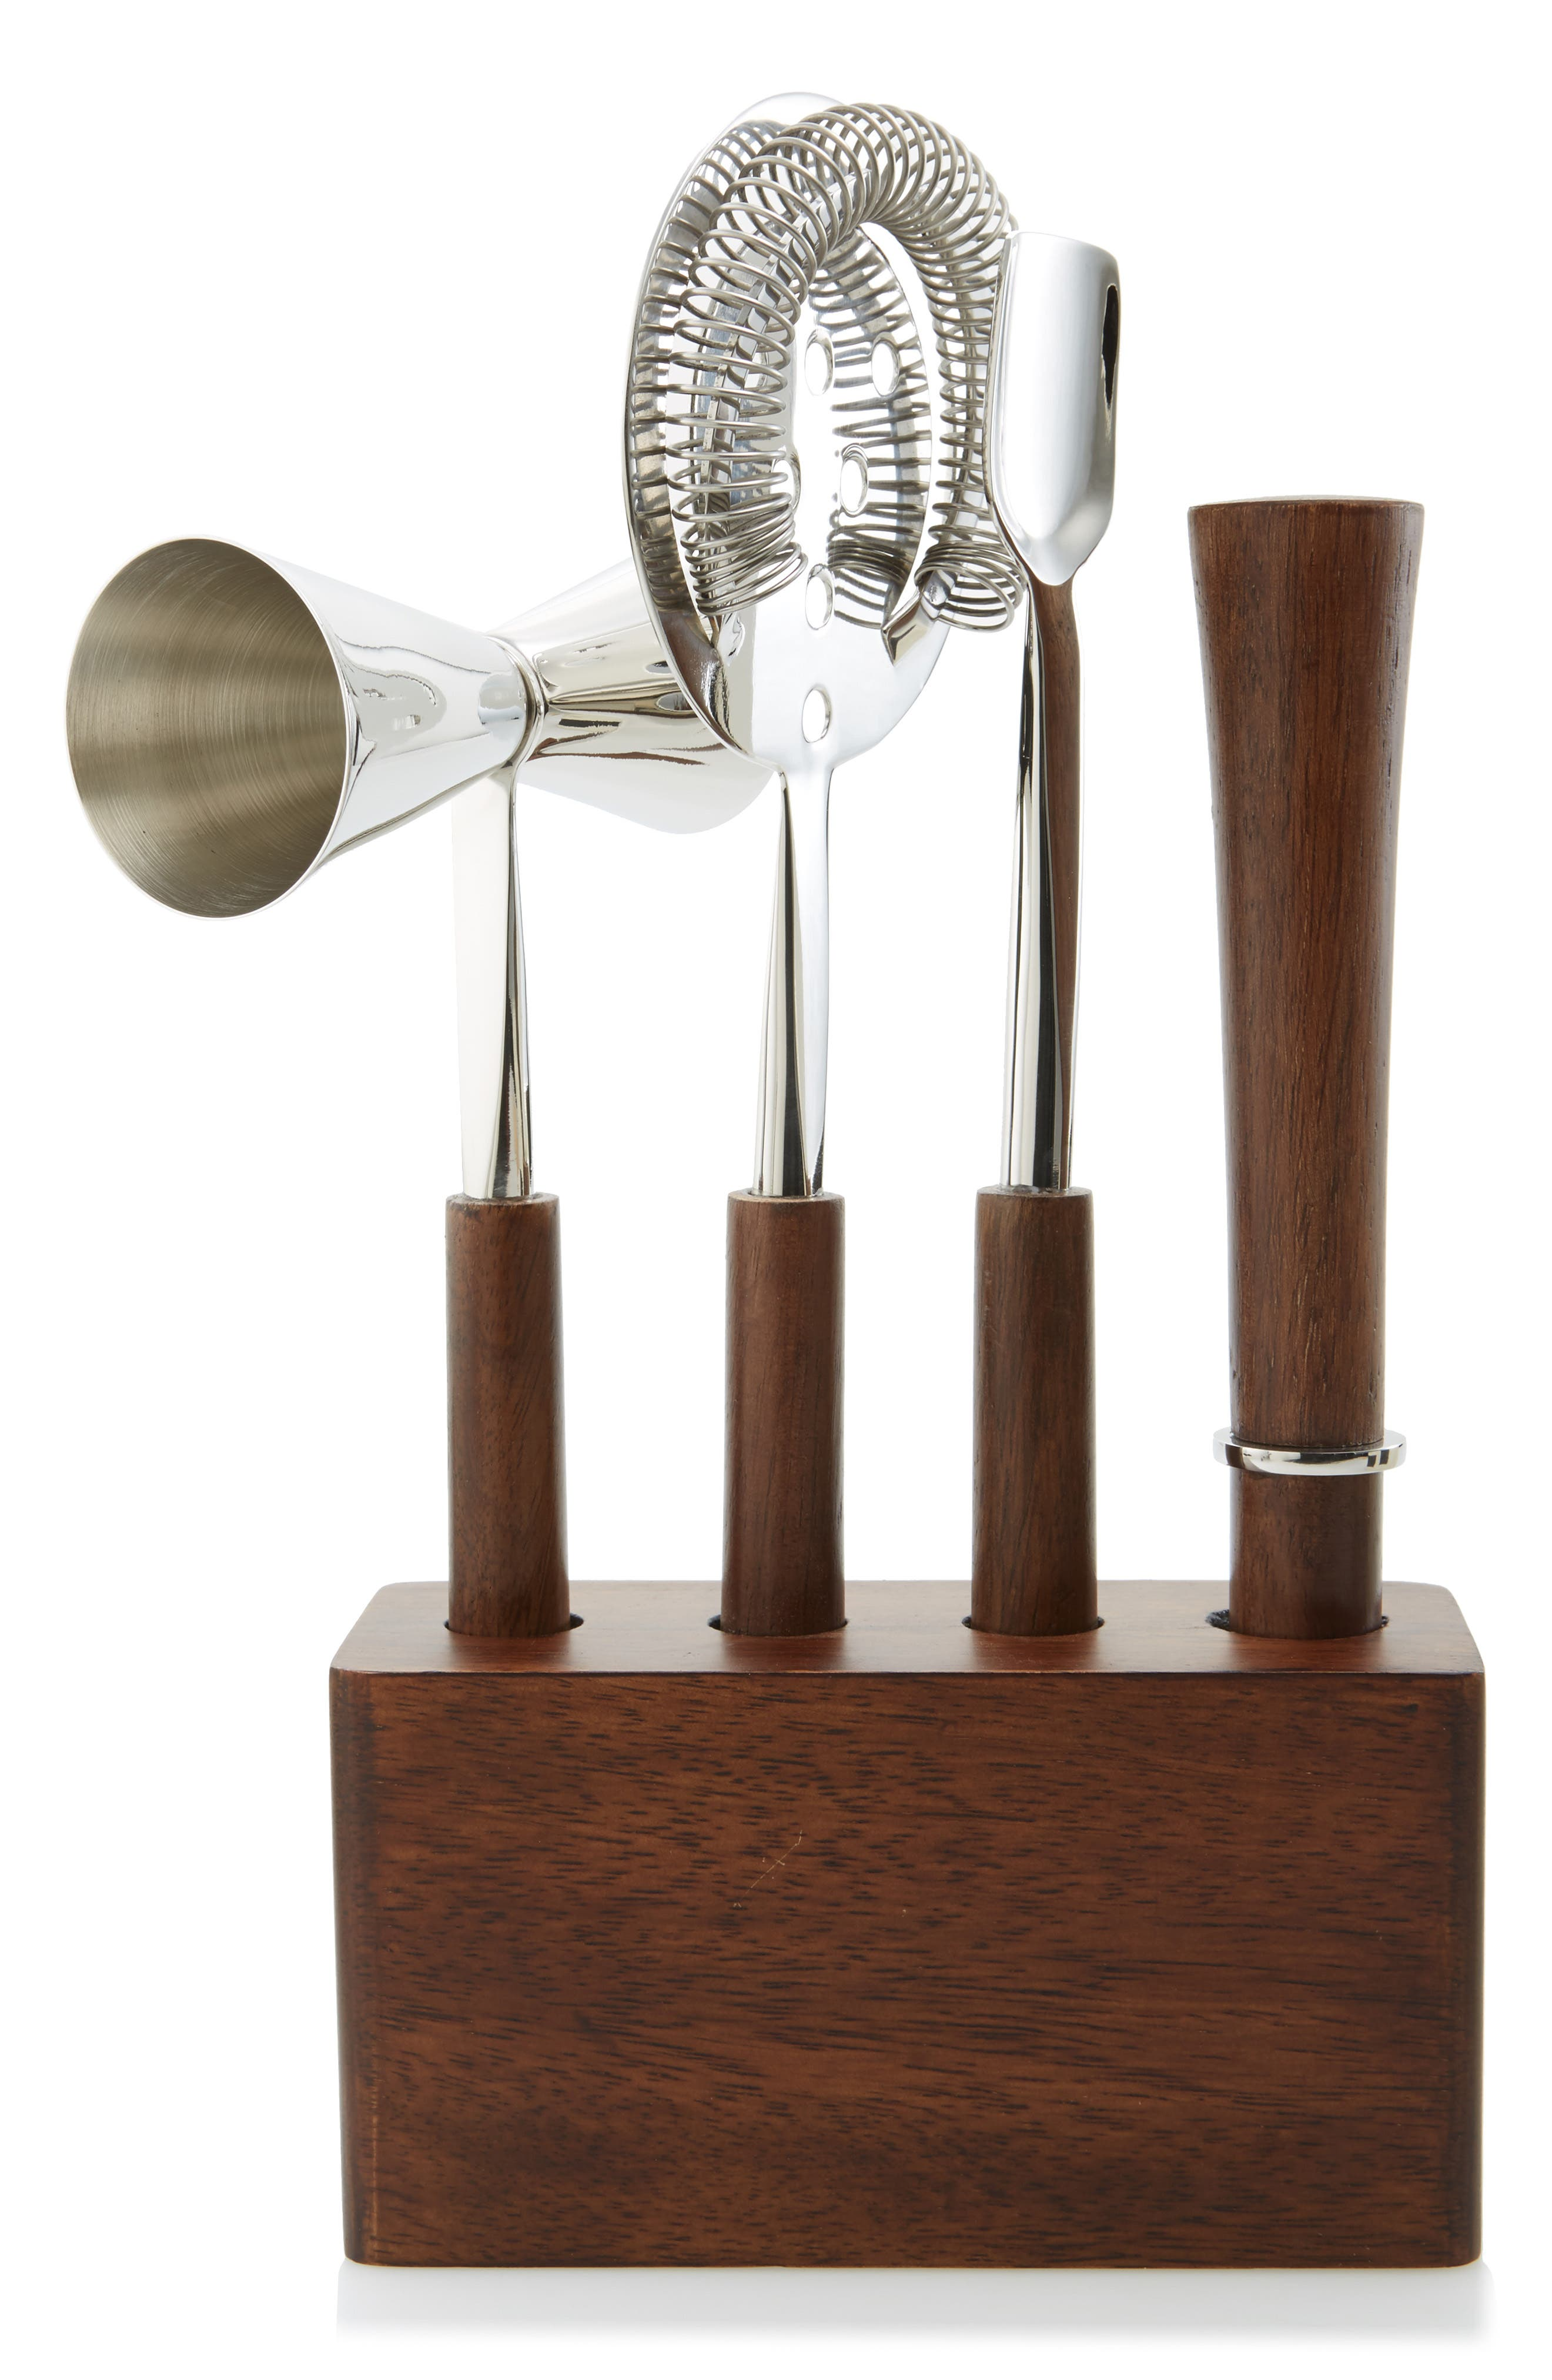 4-Piece Stainless Steel & Wood Bar Set,                         Main,                         color,